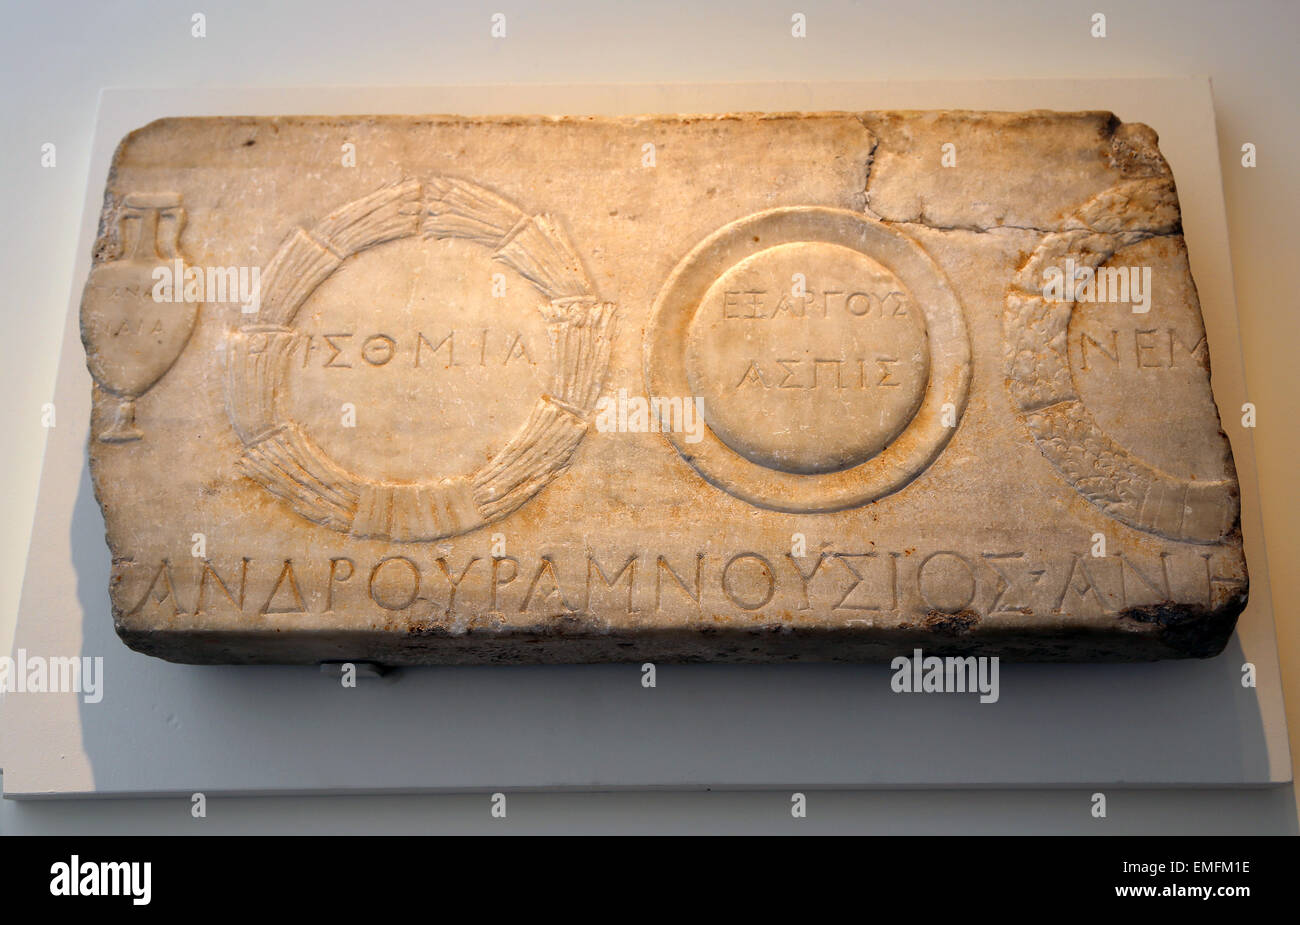 Relief depicting athletic prizes. Roman. Mid-Imperial, Antonine, 2nd c. Amphora of olive from the Panathenaic  games, - Stock Image